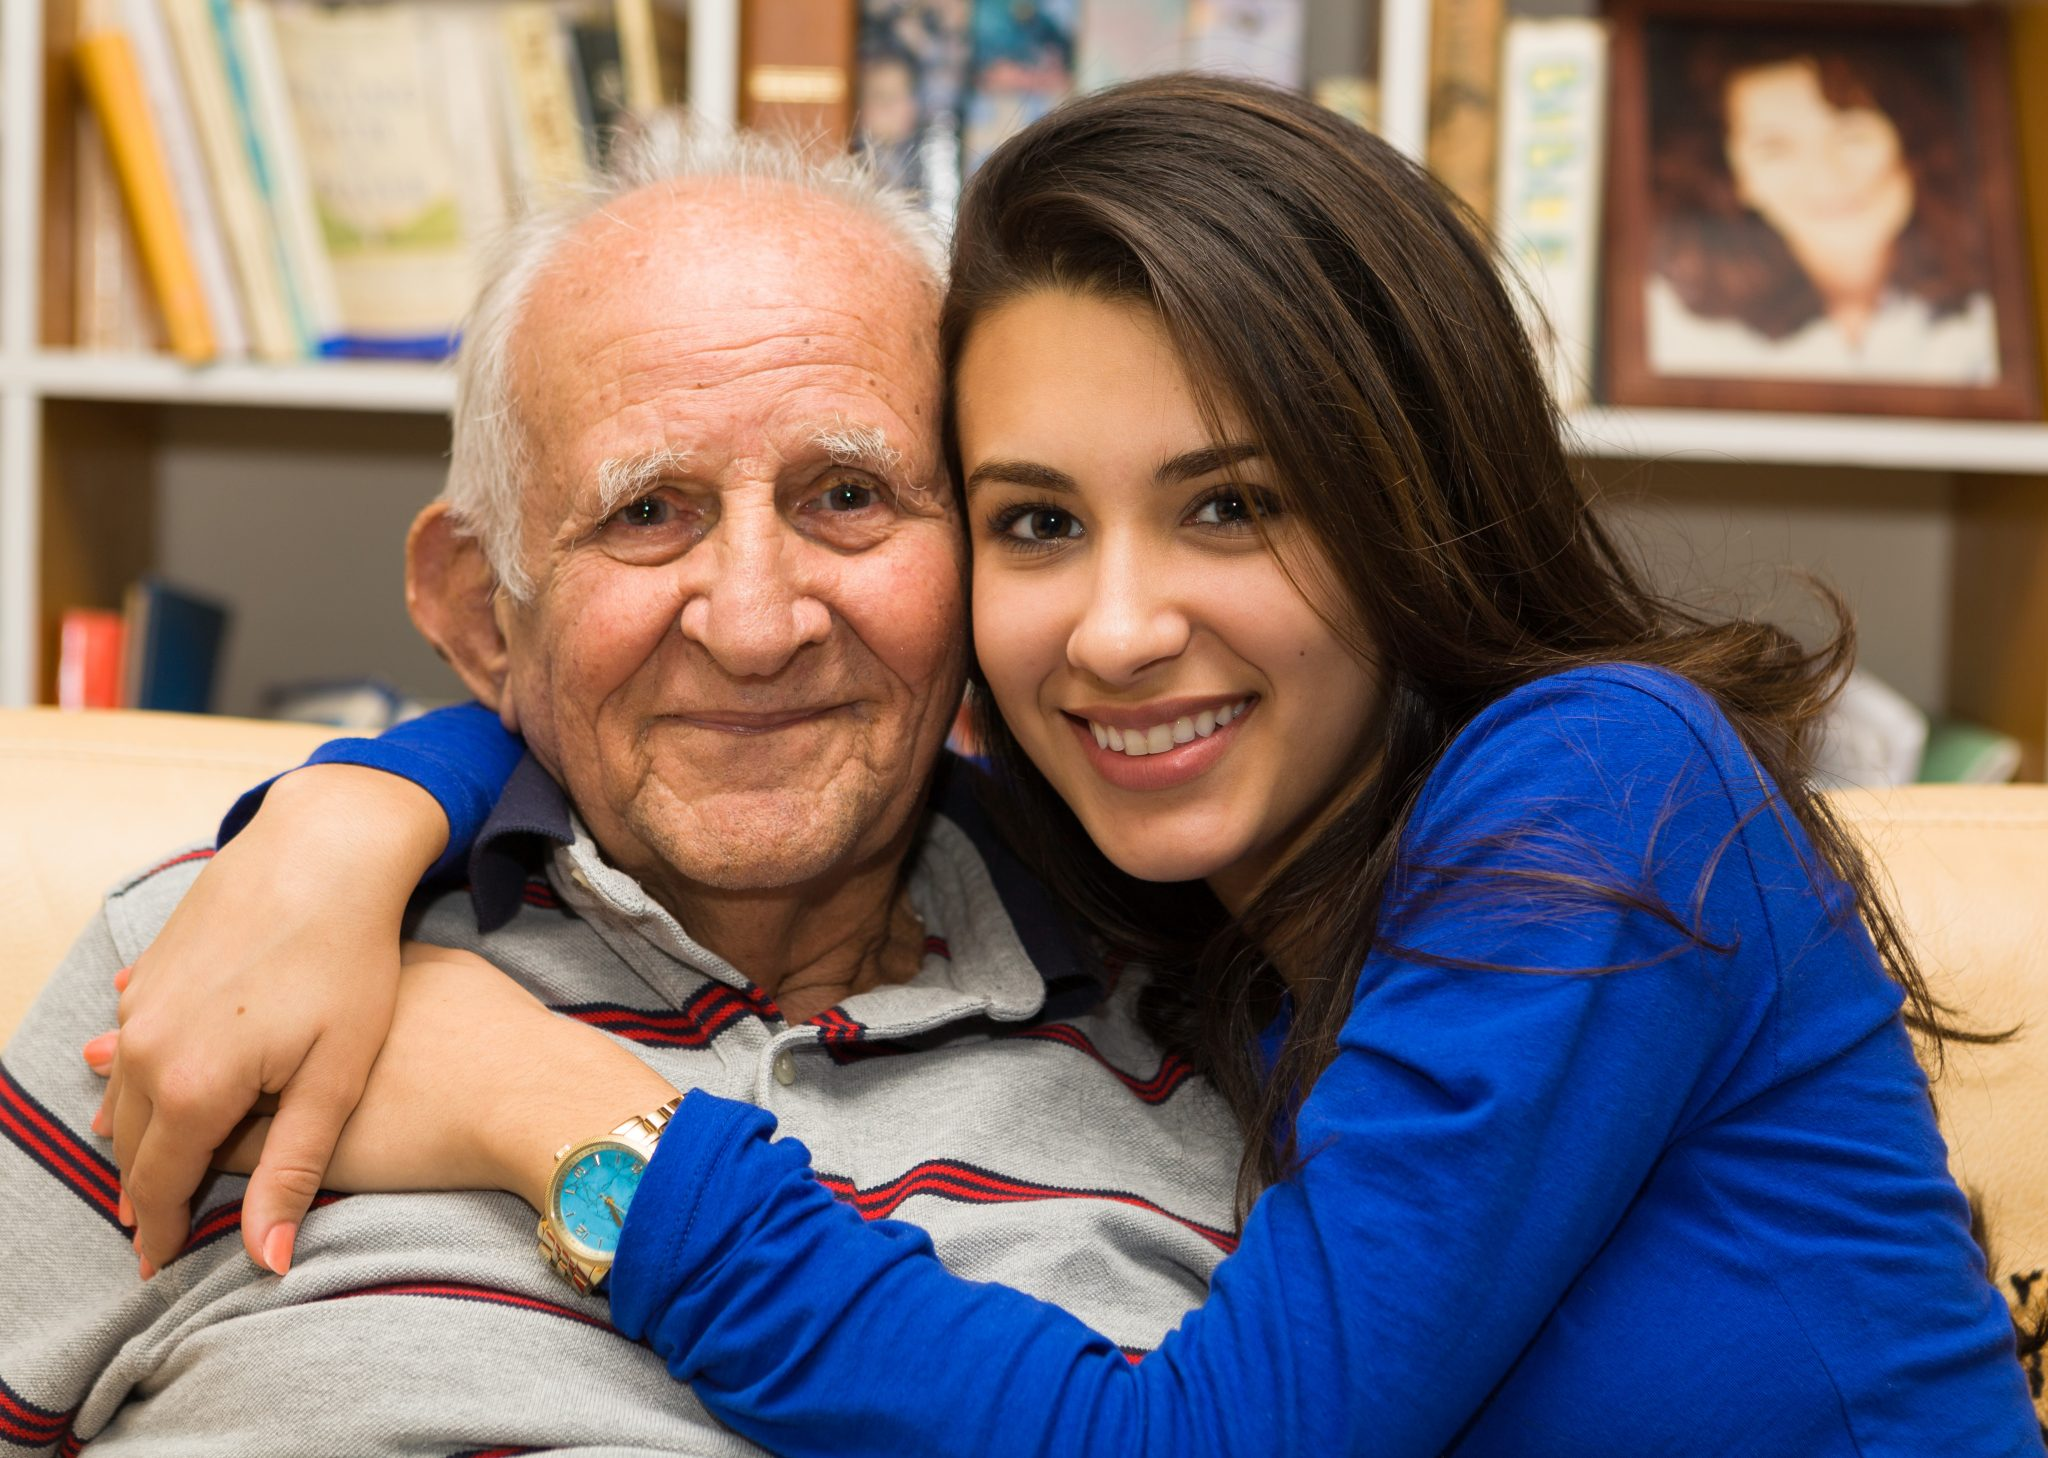 QUIZ – What Do You Know About Caring For A Person With Alzheimers Disease?